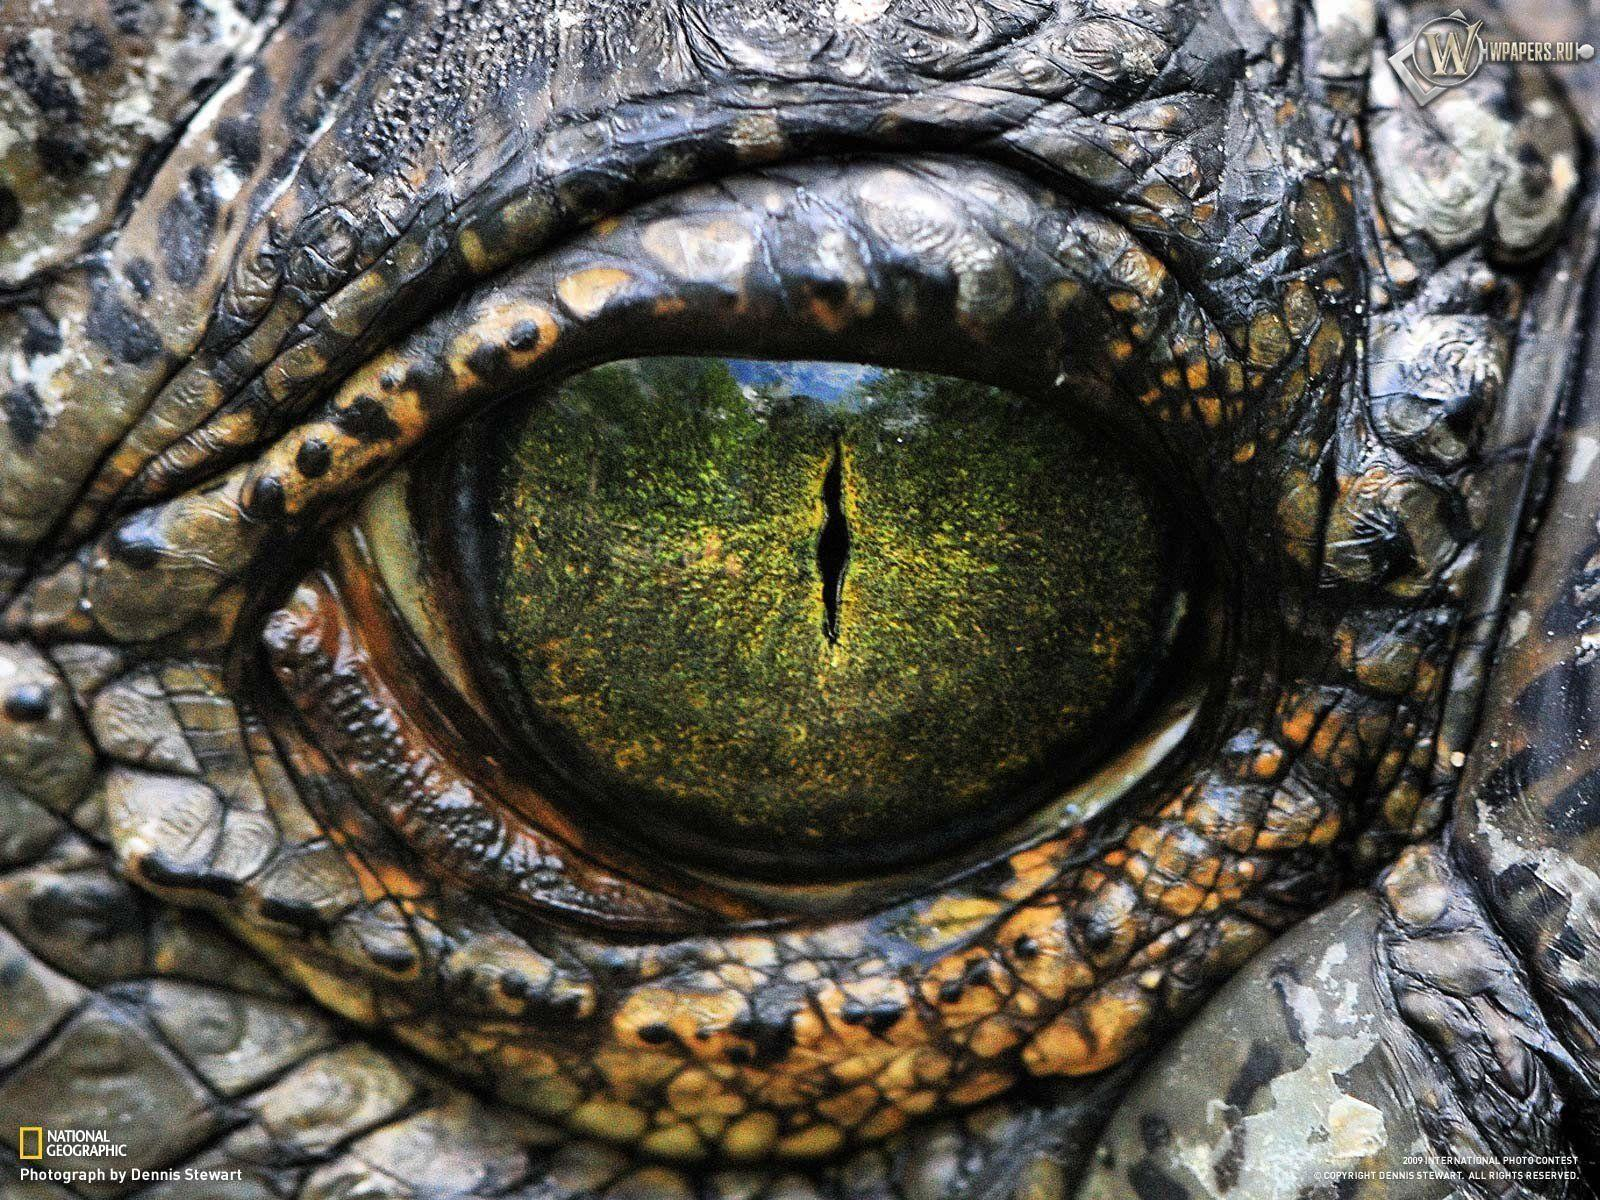 Alligator eye wallpapers, animal wallpapers